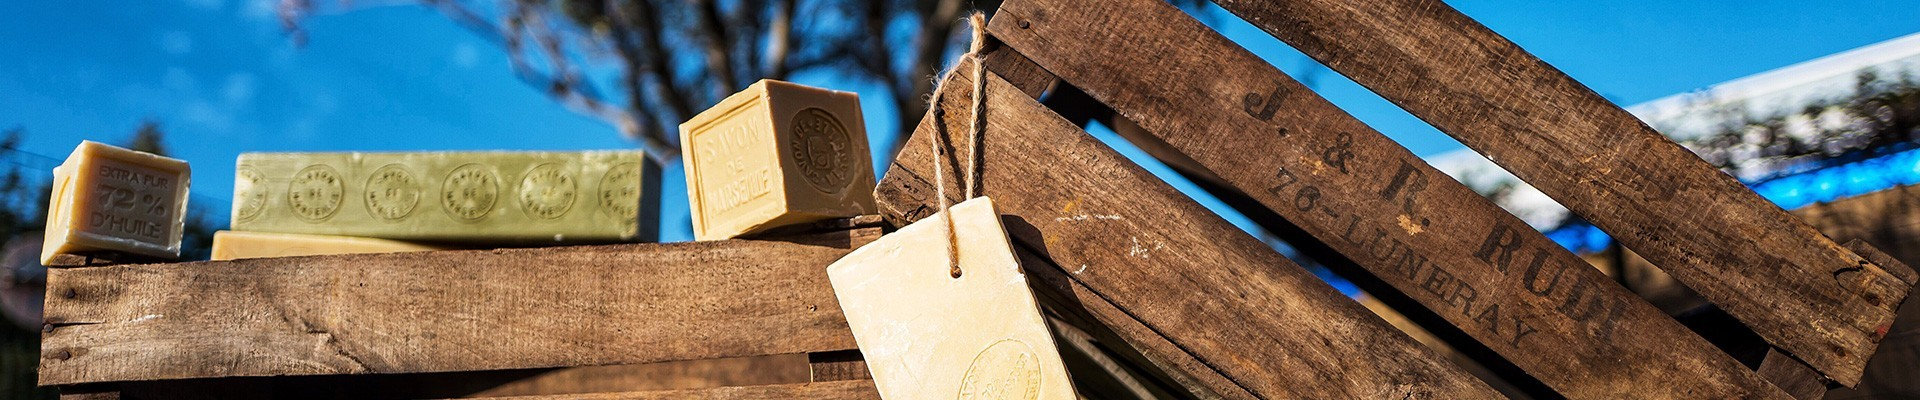 Traditional French Soap Cubes and Rustic Wooden Crates